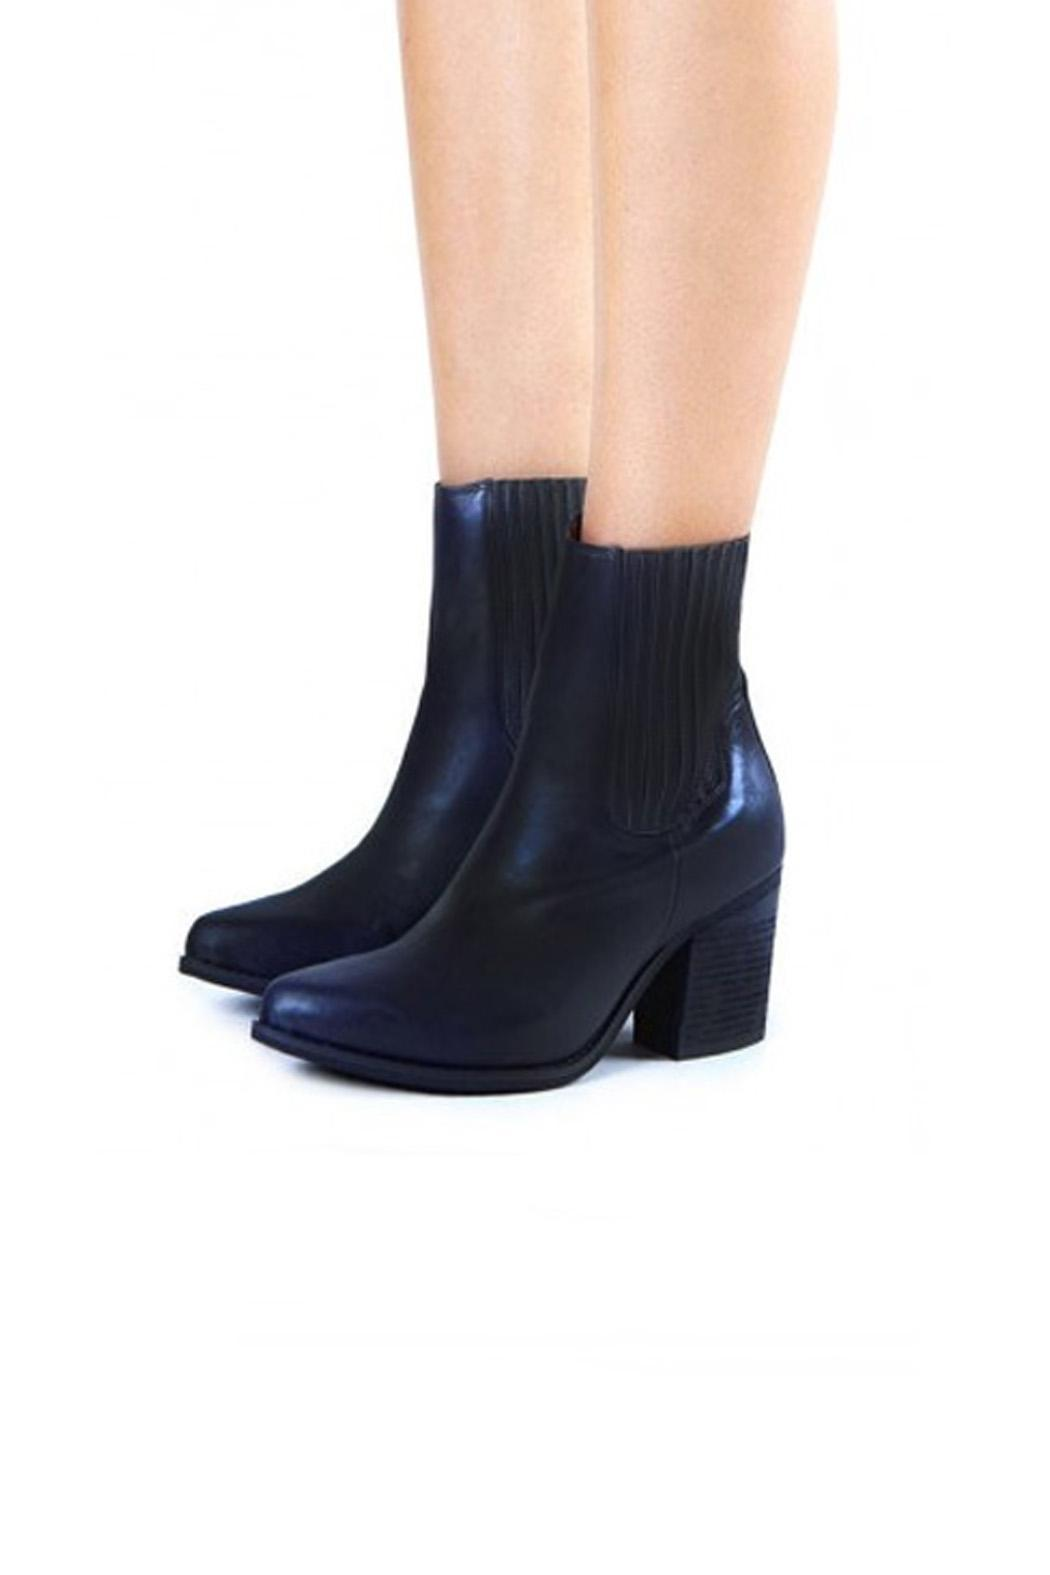 Jeffrey Campbell Black-Navy Western Boot - Front Full Image